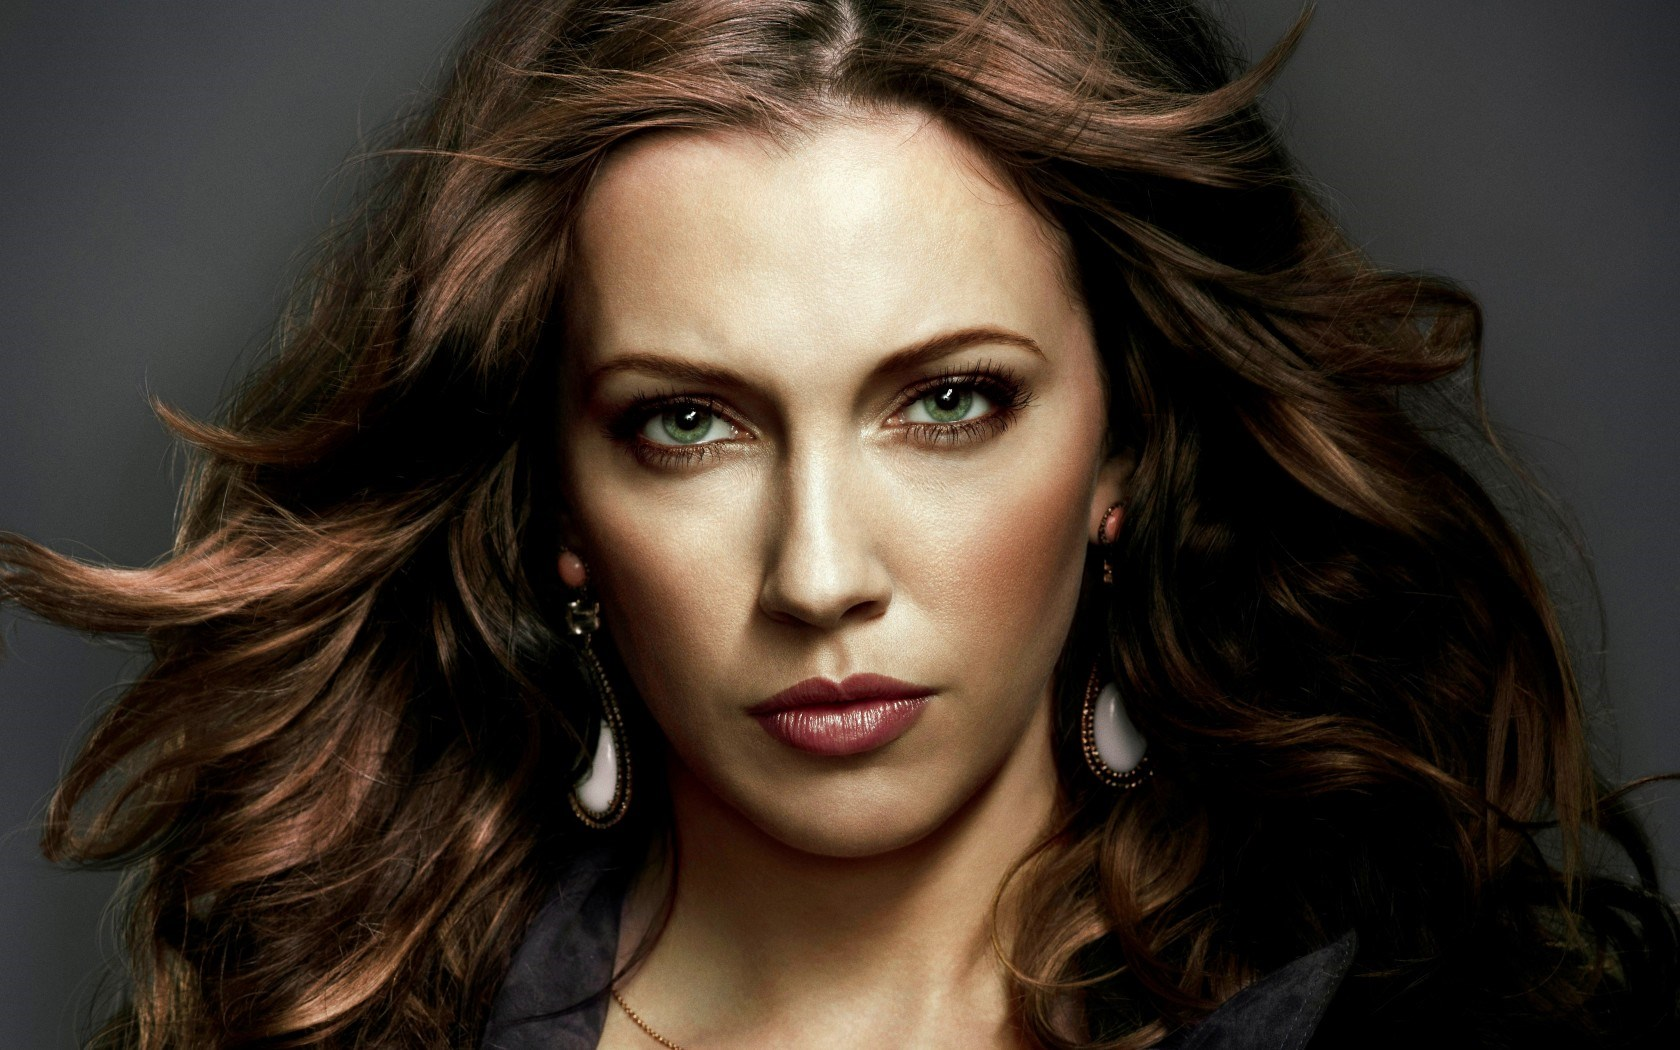 Green Beautiful Eyes Katie Cassidy Actress HD Wallpaper